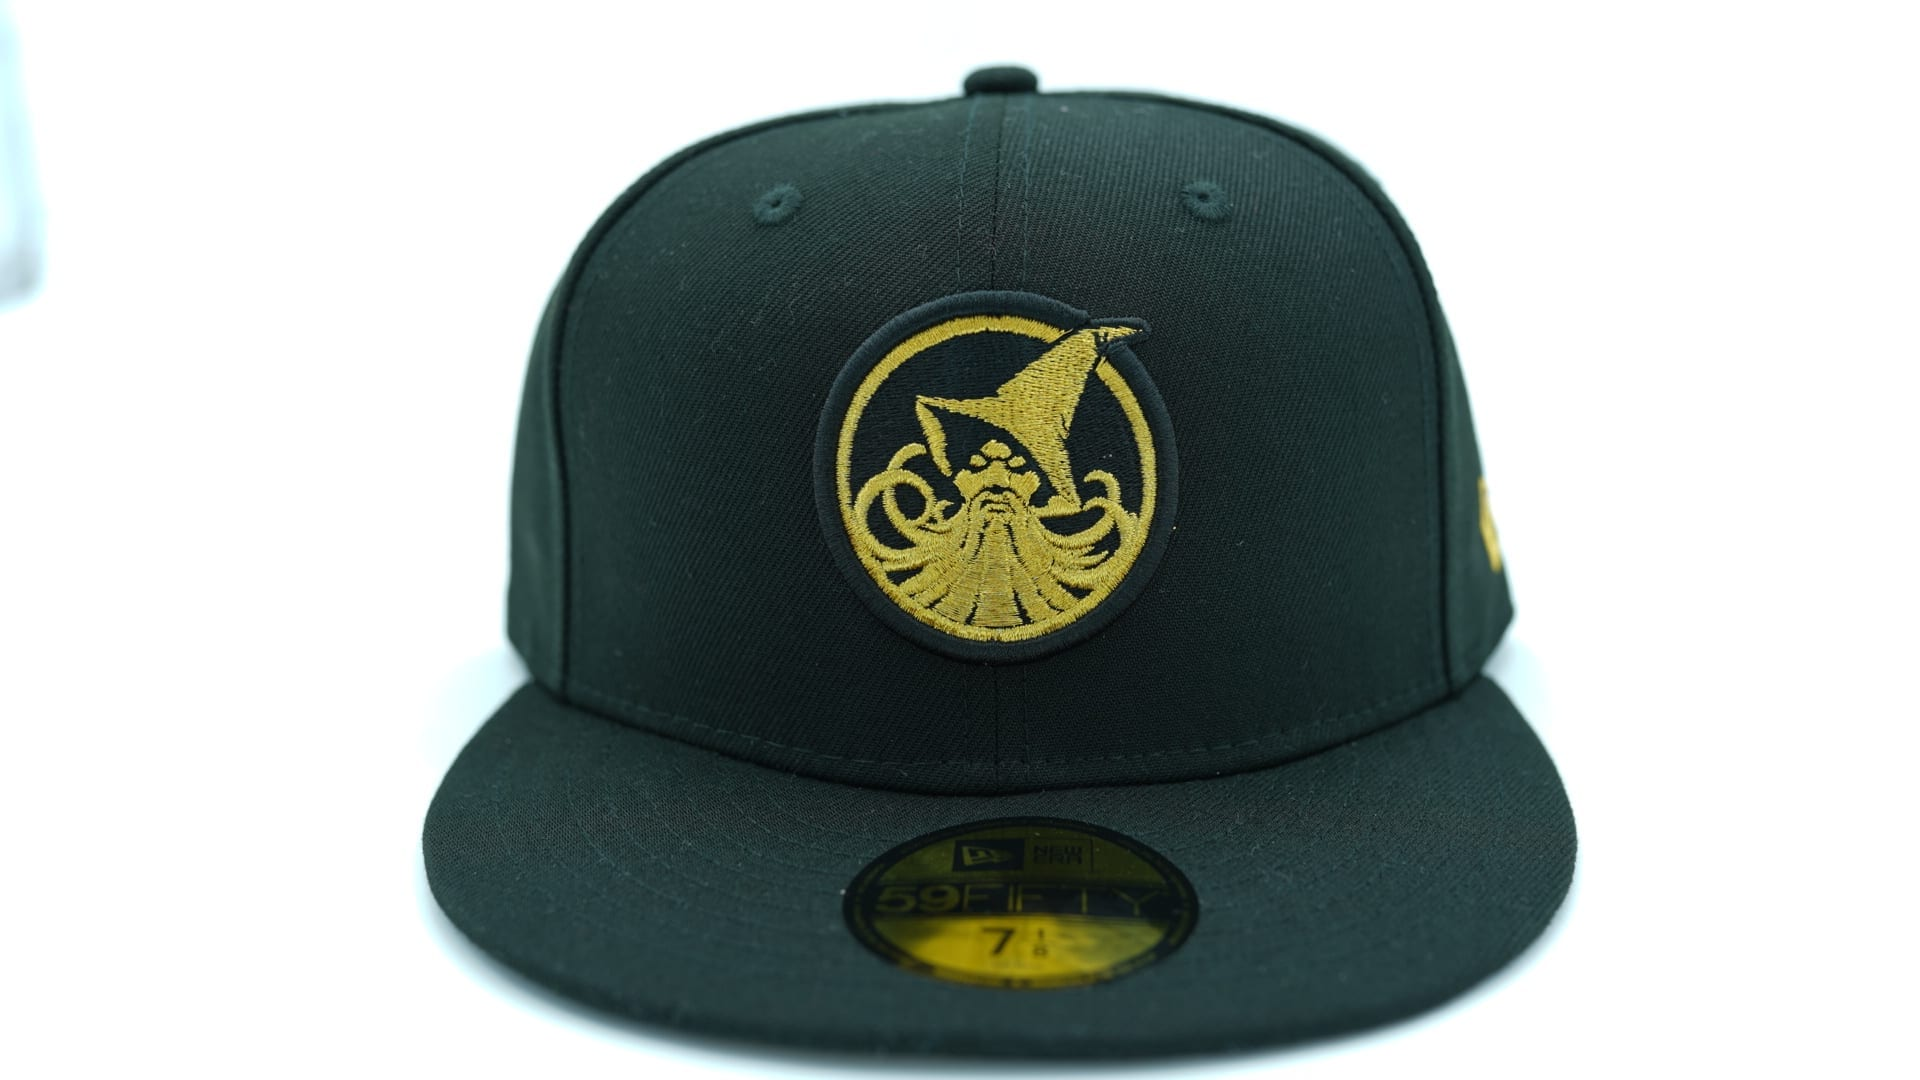 Cyborg Justice League Armor 59Fifty Fitted Hat by DC COMICS x NEW ERA